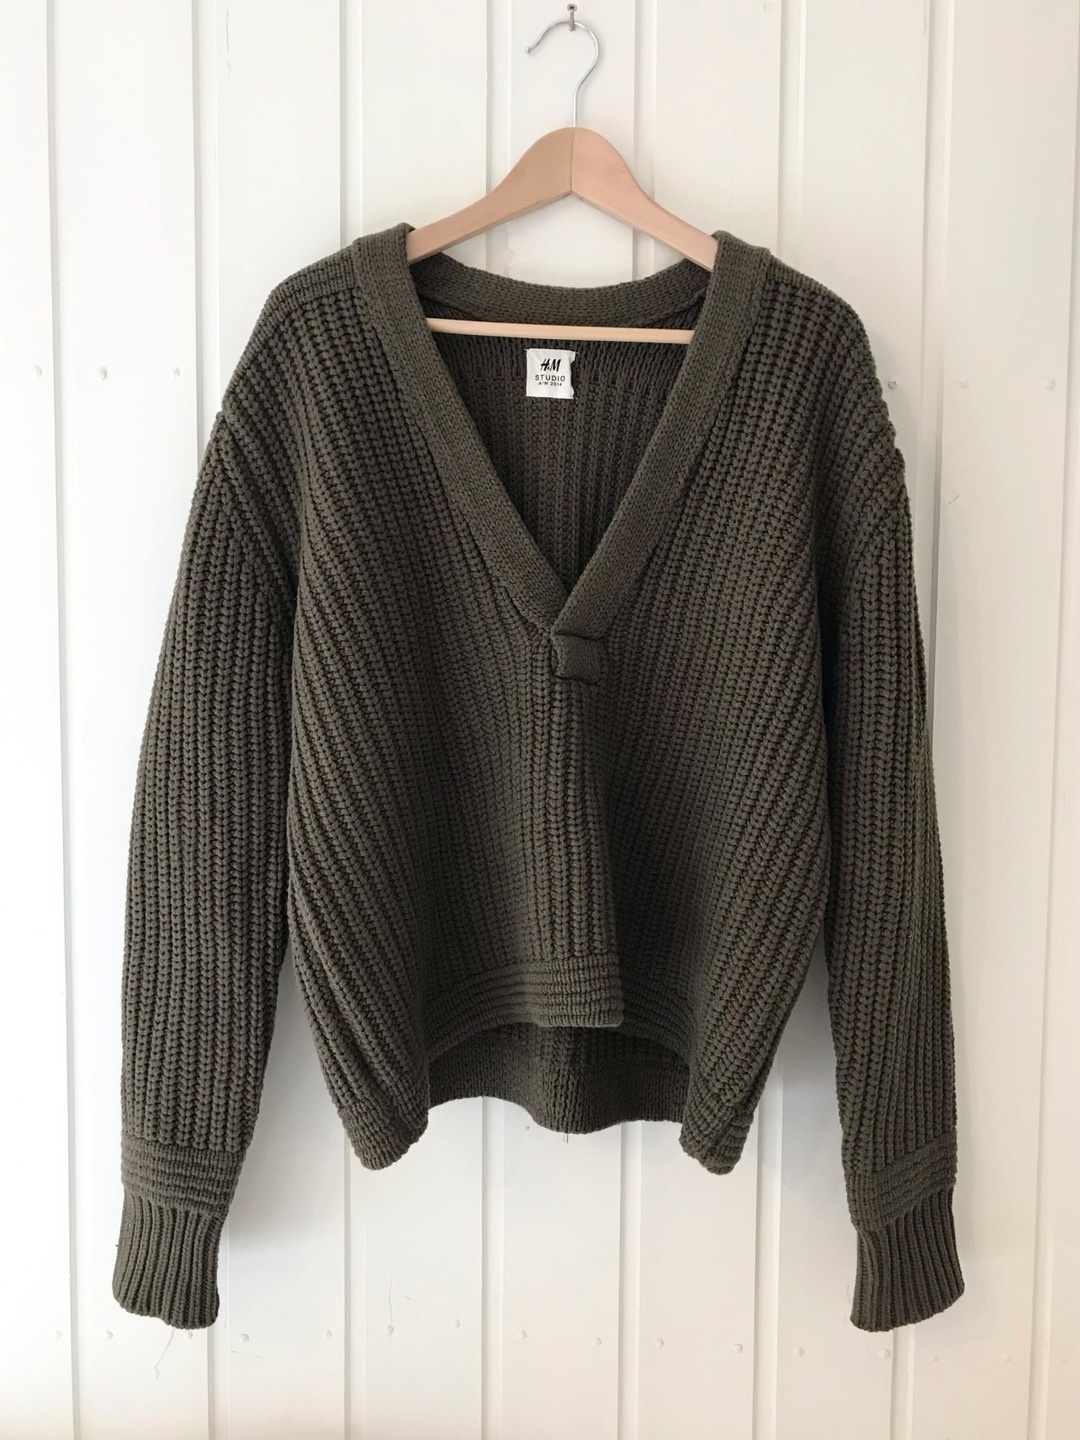 Women's jumpers & cardigans - PREMIUM H&M photo 1